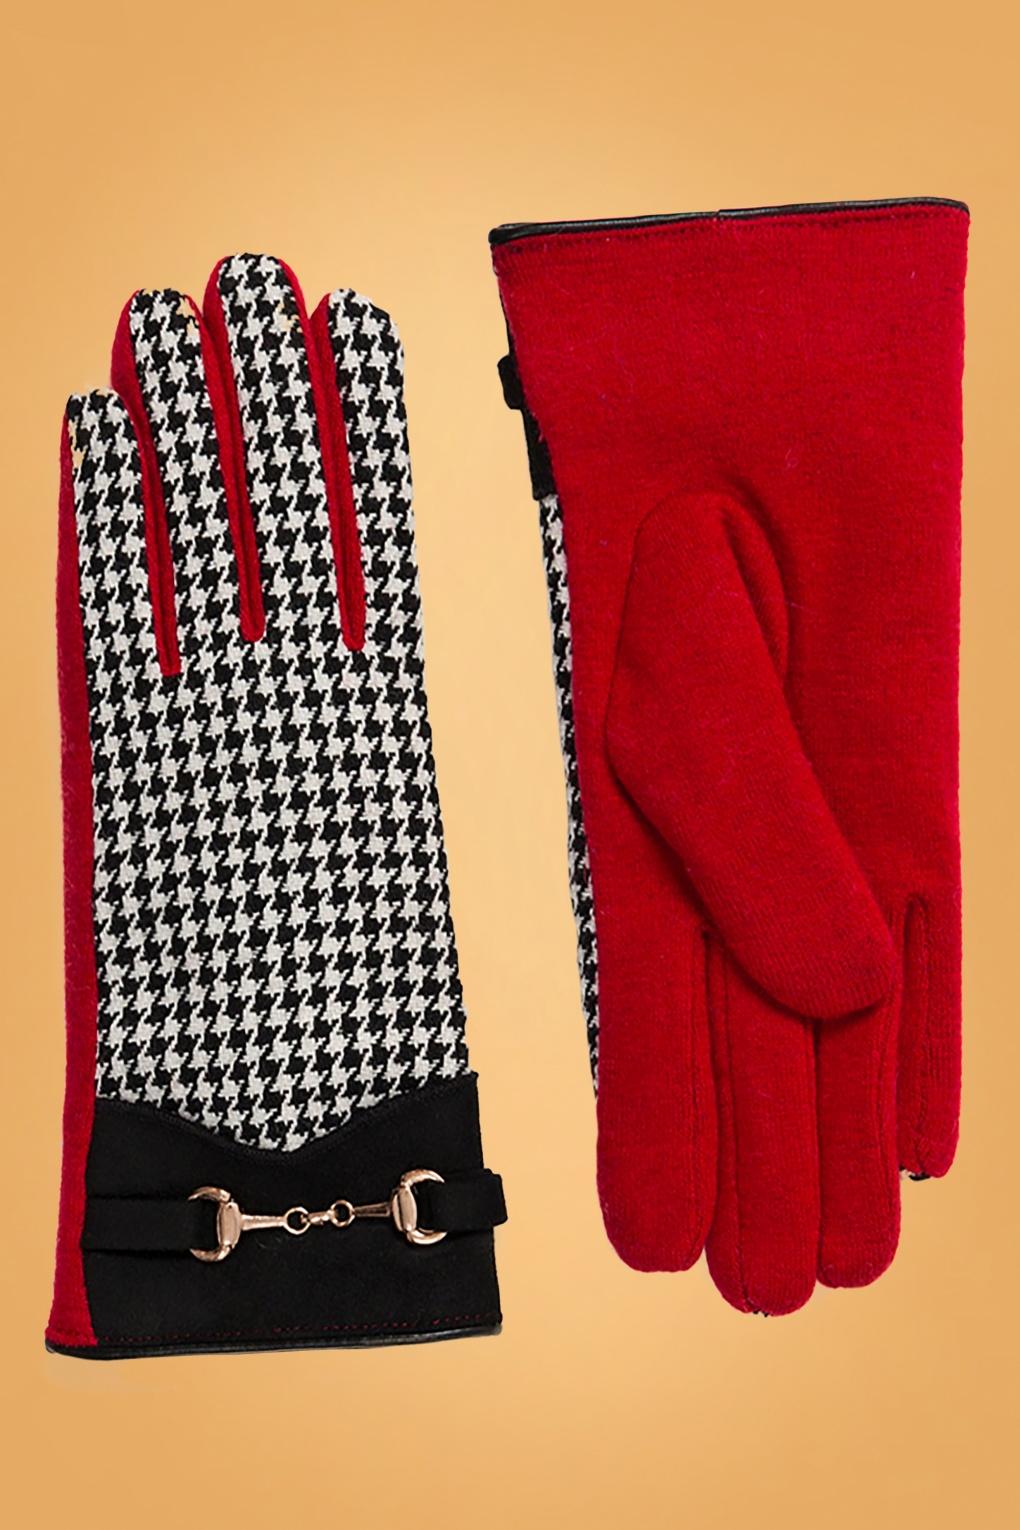 Vintage Inspired Dresses & Clothing UK 60s Latoya Houndstooth Gloves in Black and Red £22.24 AT vintagedancer.com